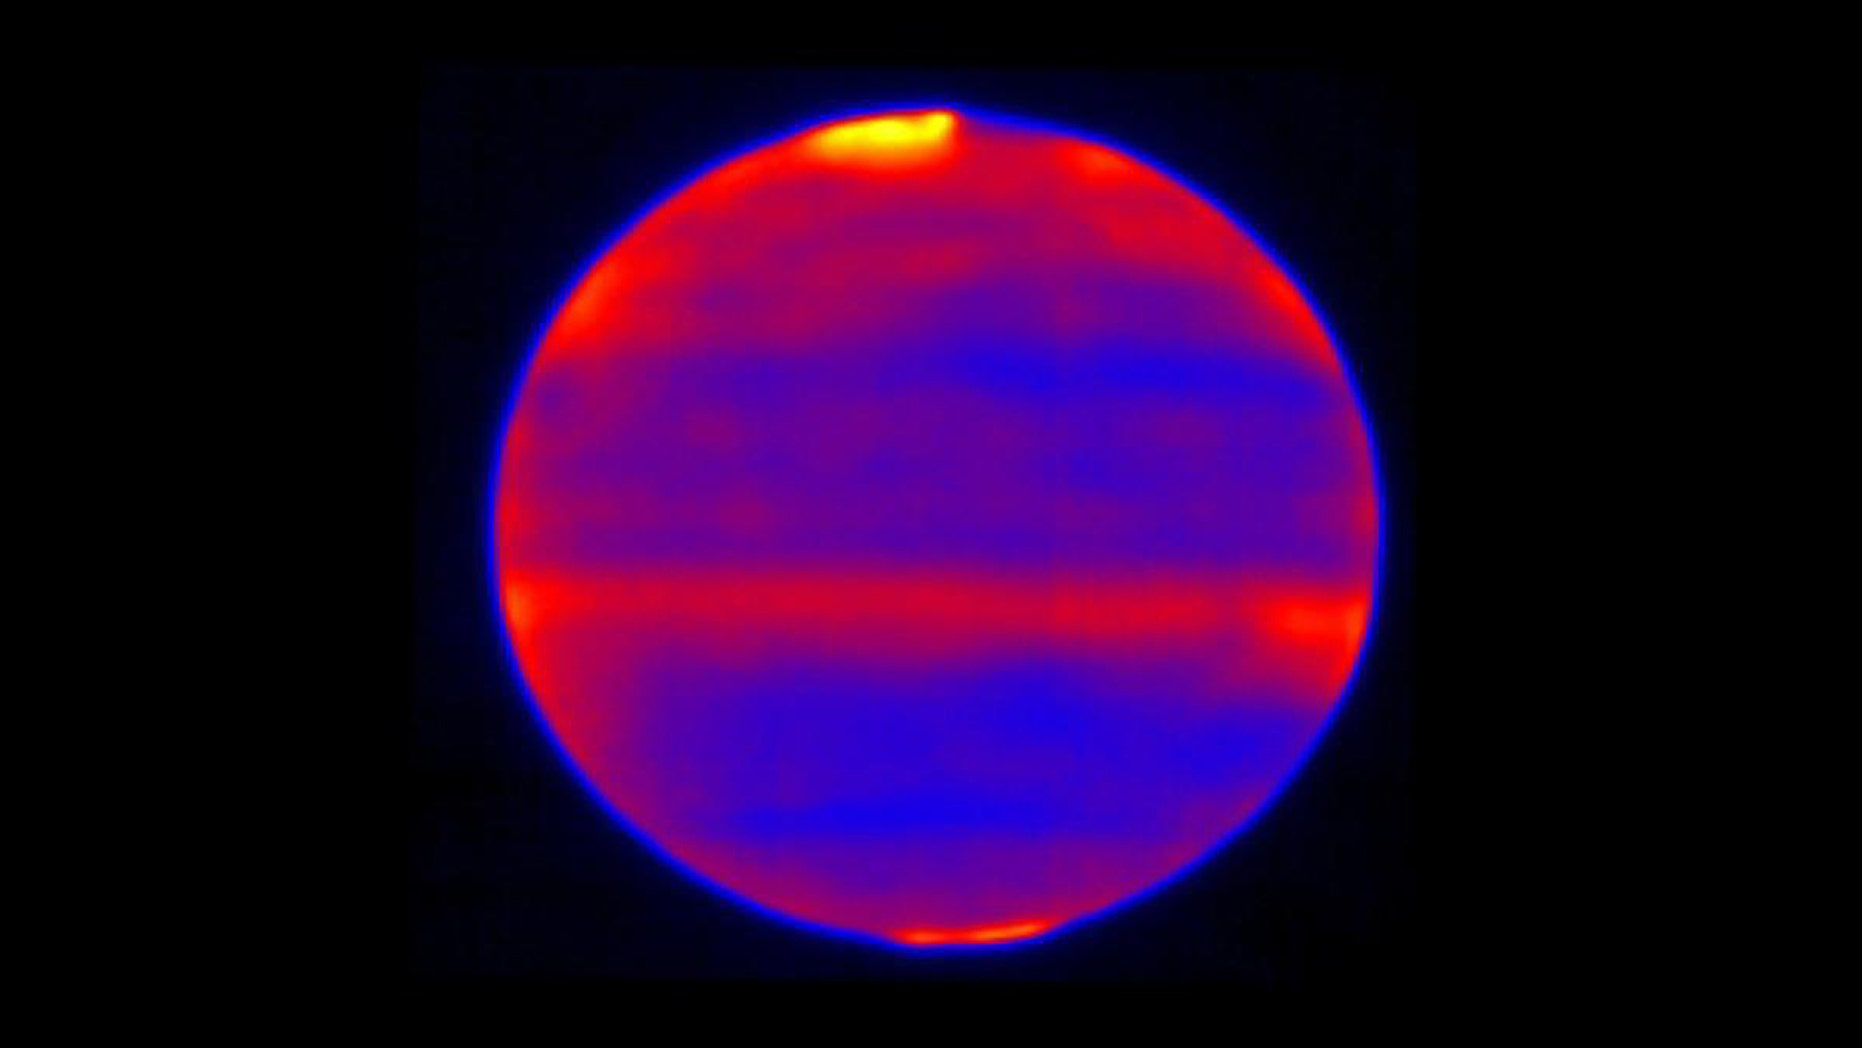 Scientists used red, blue and yellow to infuse this infrared image of Jupiter's atmosphere (red and yellow indicate the hotter regions), which was recorded by the Cooled Mid-Infrared Camera and Spectrograph (COMICS) at the Subaru Telescope on the summit of Mauna Kea, Hawaii on Jan. 12, 2017. (Credit: NAOJ and NASA/JPL-Caltech)